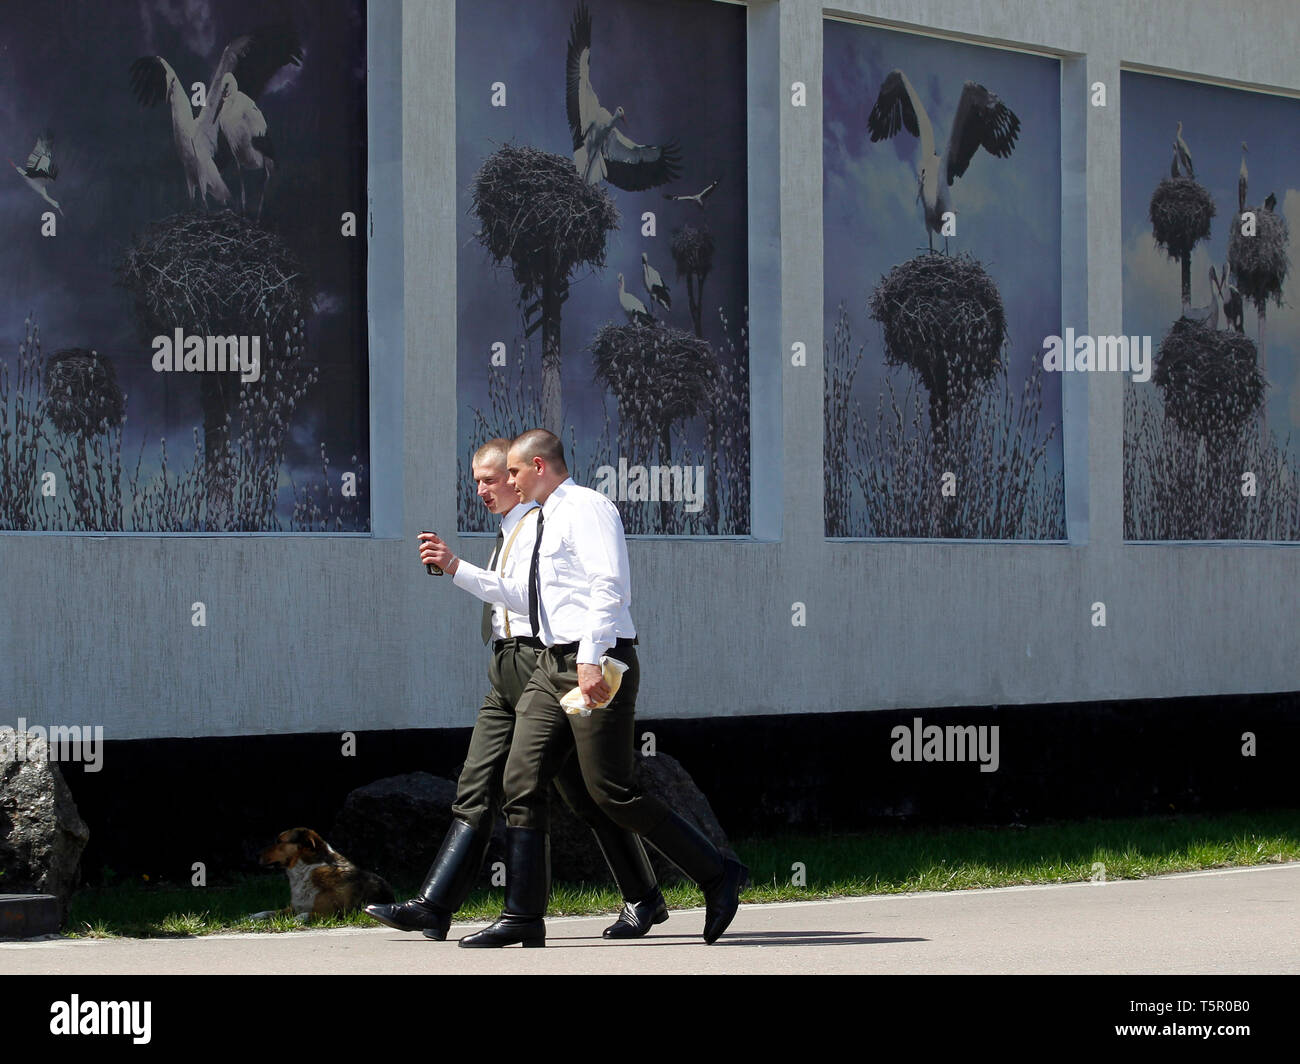 Two men are seen walking next to images of a local museum dedicated to the Chernobyl disaster during the anniversary. Ukrainians mark the 33rd anniversary of Chernobyl catastrophe. The explosion of the fourth block of the Chernobyl nuclear plant on 26 April 1986 is still regarded as the biggest accident in the history of nuclear power generation. - Stock Image